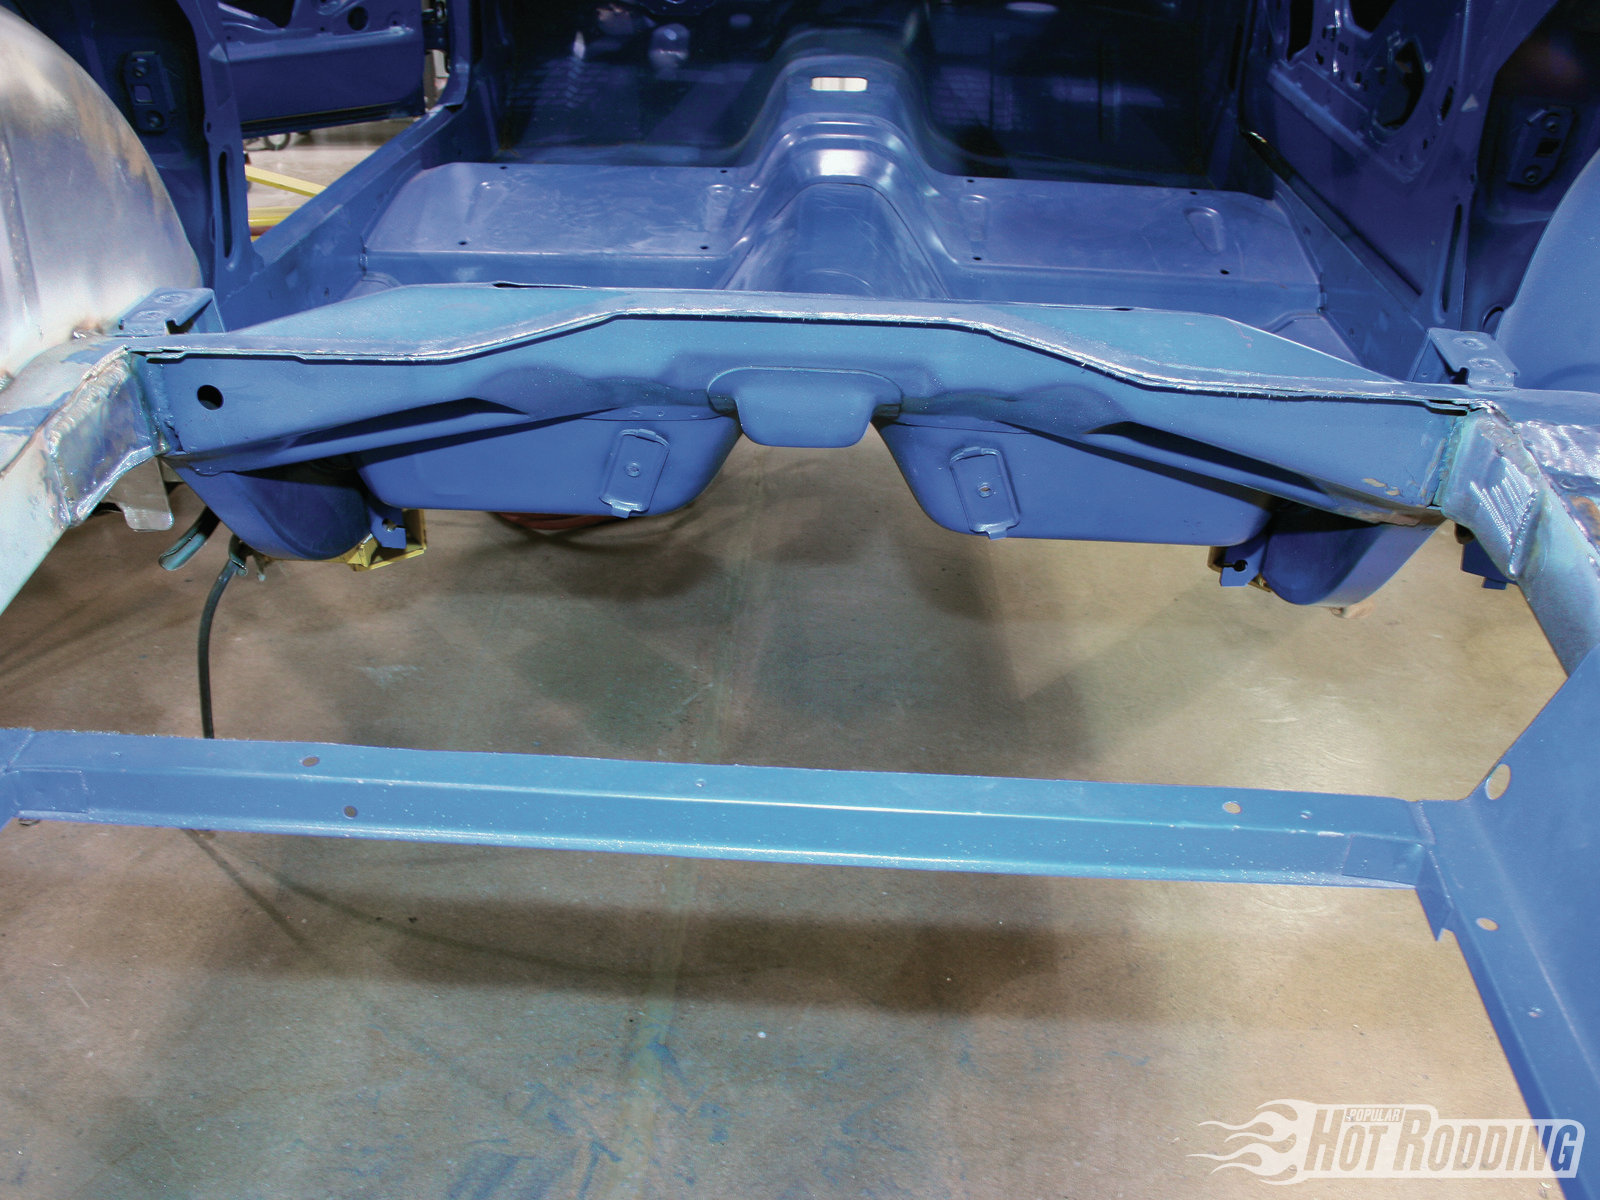 4. Once the rear cutline has been established, begin cutting from the center of the floorpan out toward the framerails on each side using a cutoff wheel. The front flange line of the trunk pan is clearly visible from beneath the car, which serves perfectly as the front cutline. Next, cut the sides of the trunk floor as close to the framerails as possible, then remove the entire pan.